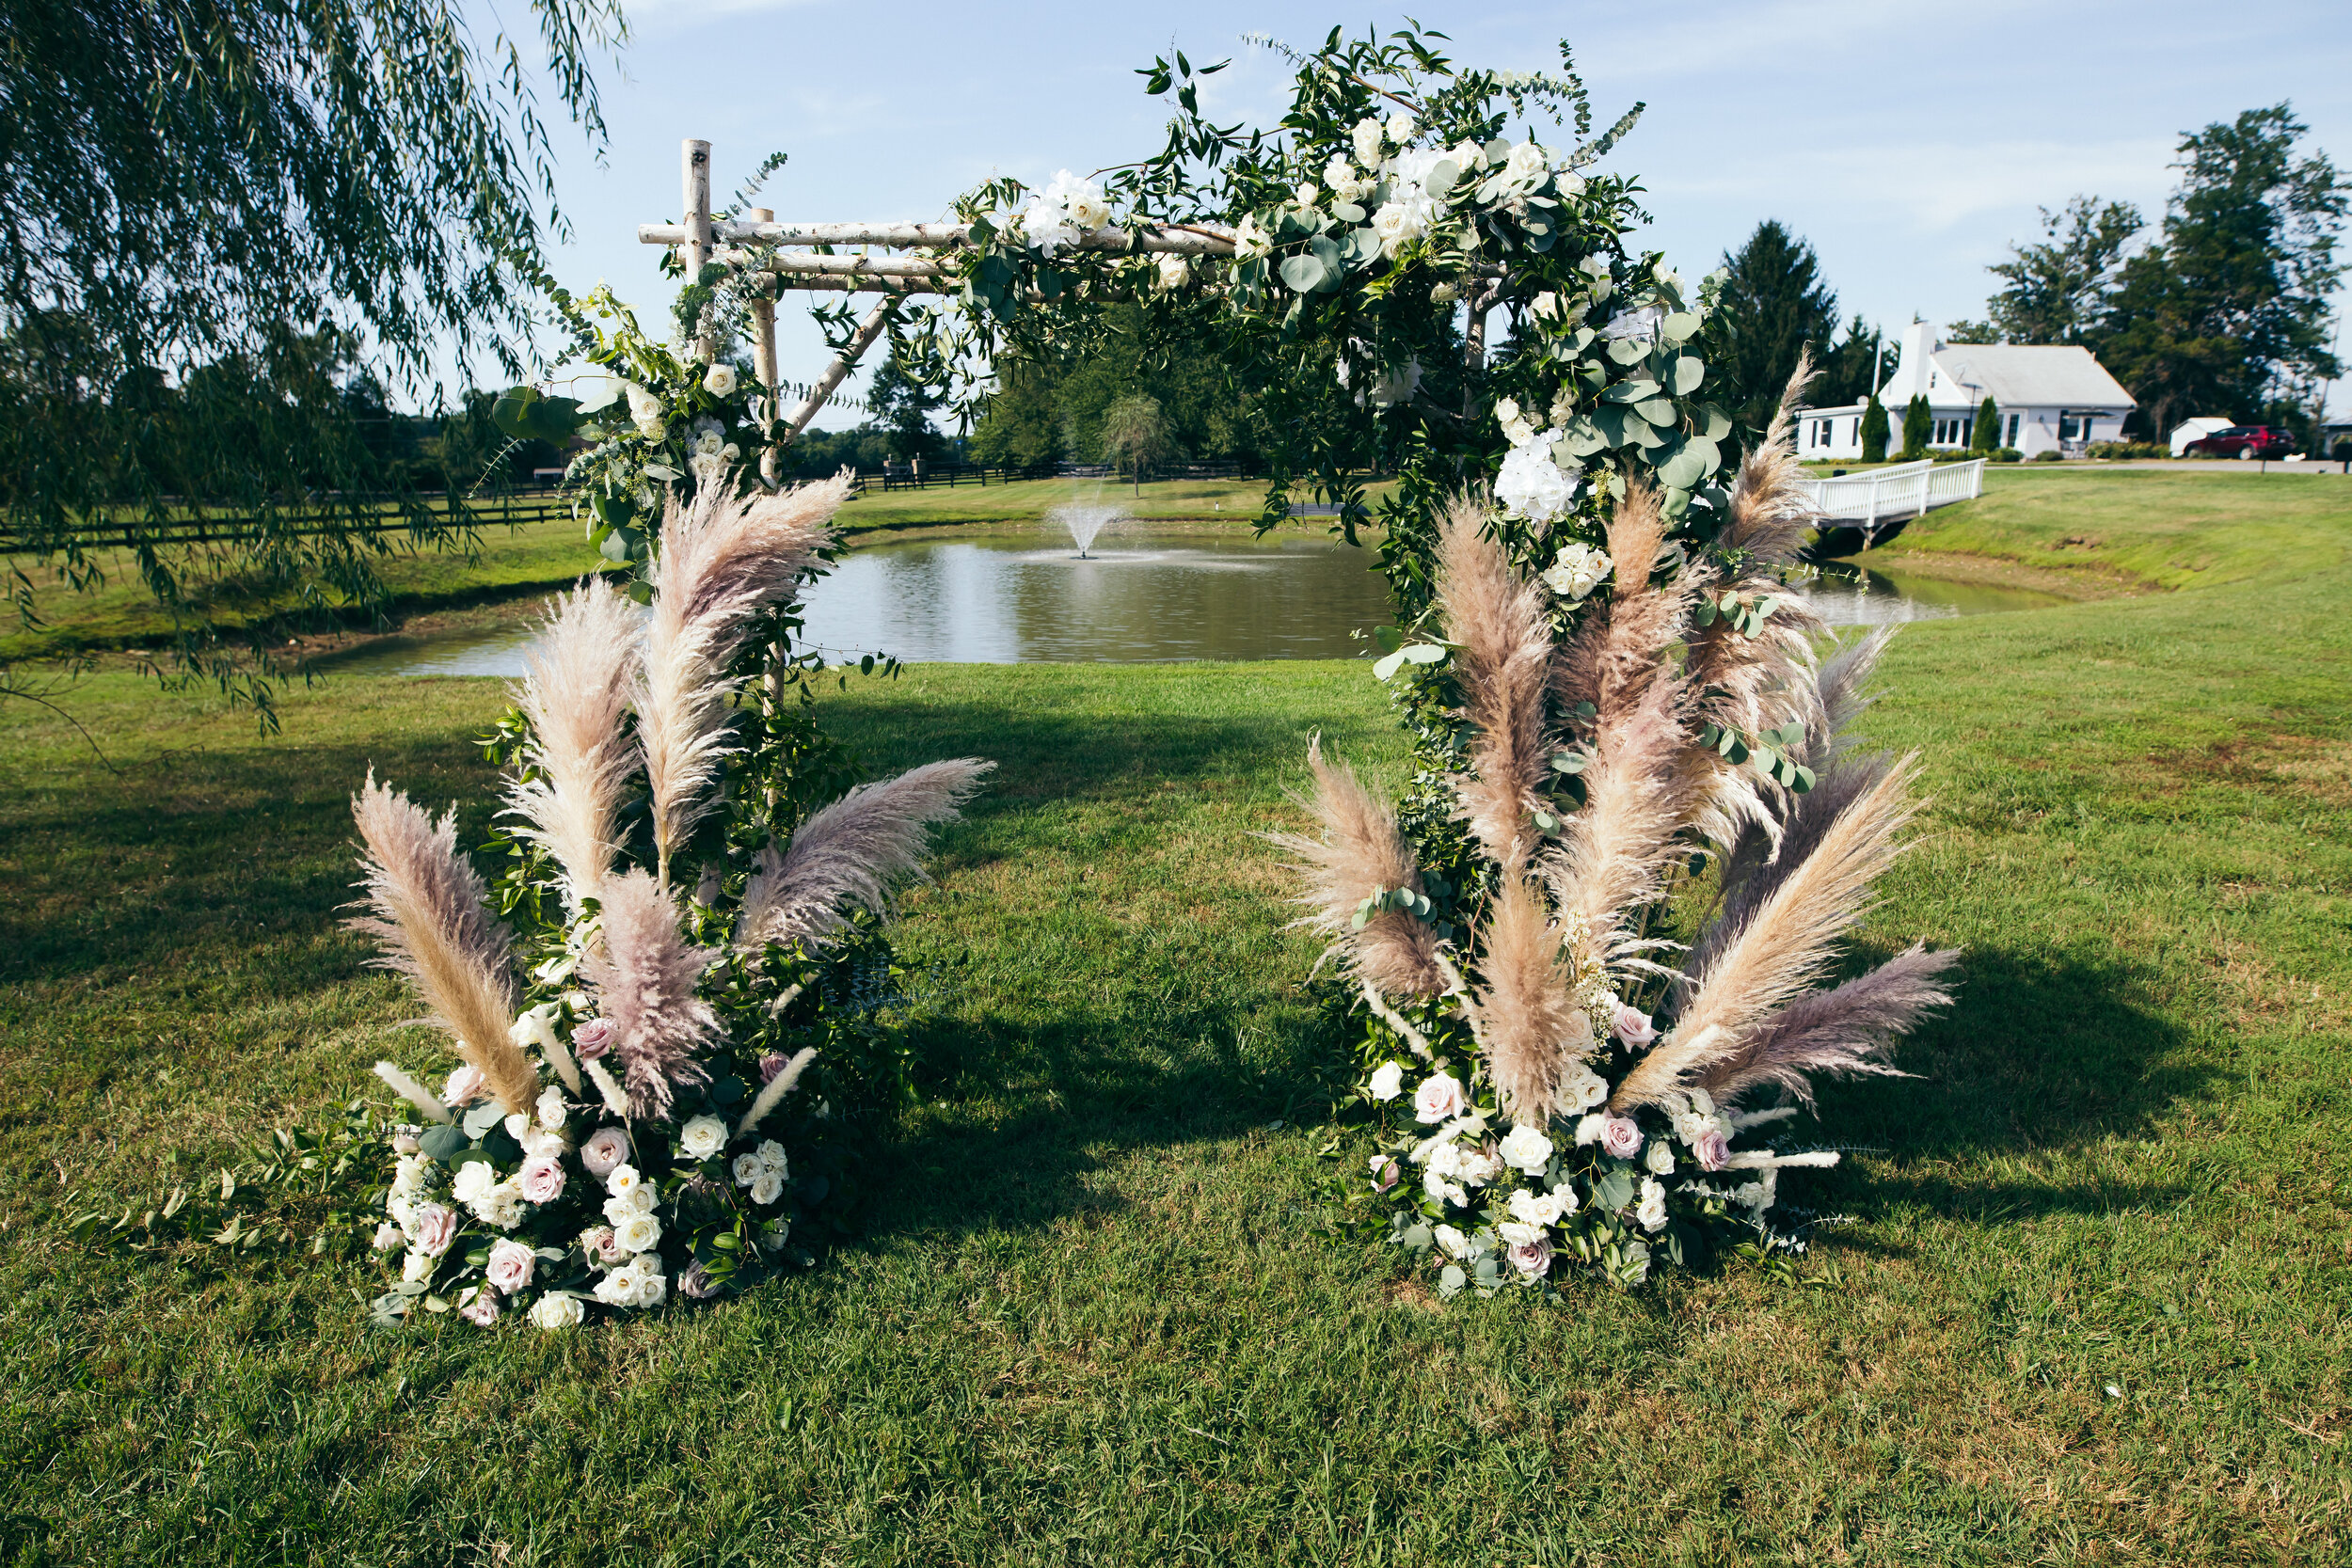 This Arch! - For this arch, we used lots of pampas grass mixed with greenery & florals for a really whimsical & boho aesthetic. The pond &beautiful grounds in the background made the perfect backdrop for this truly special ceremony.